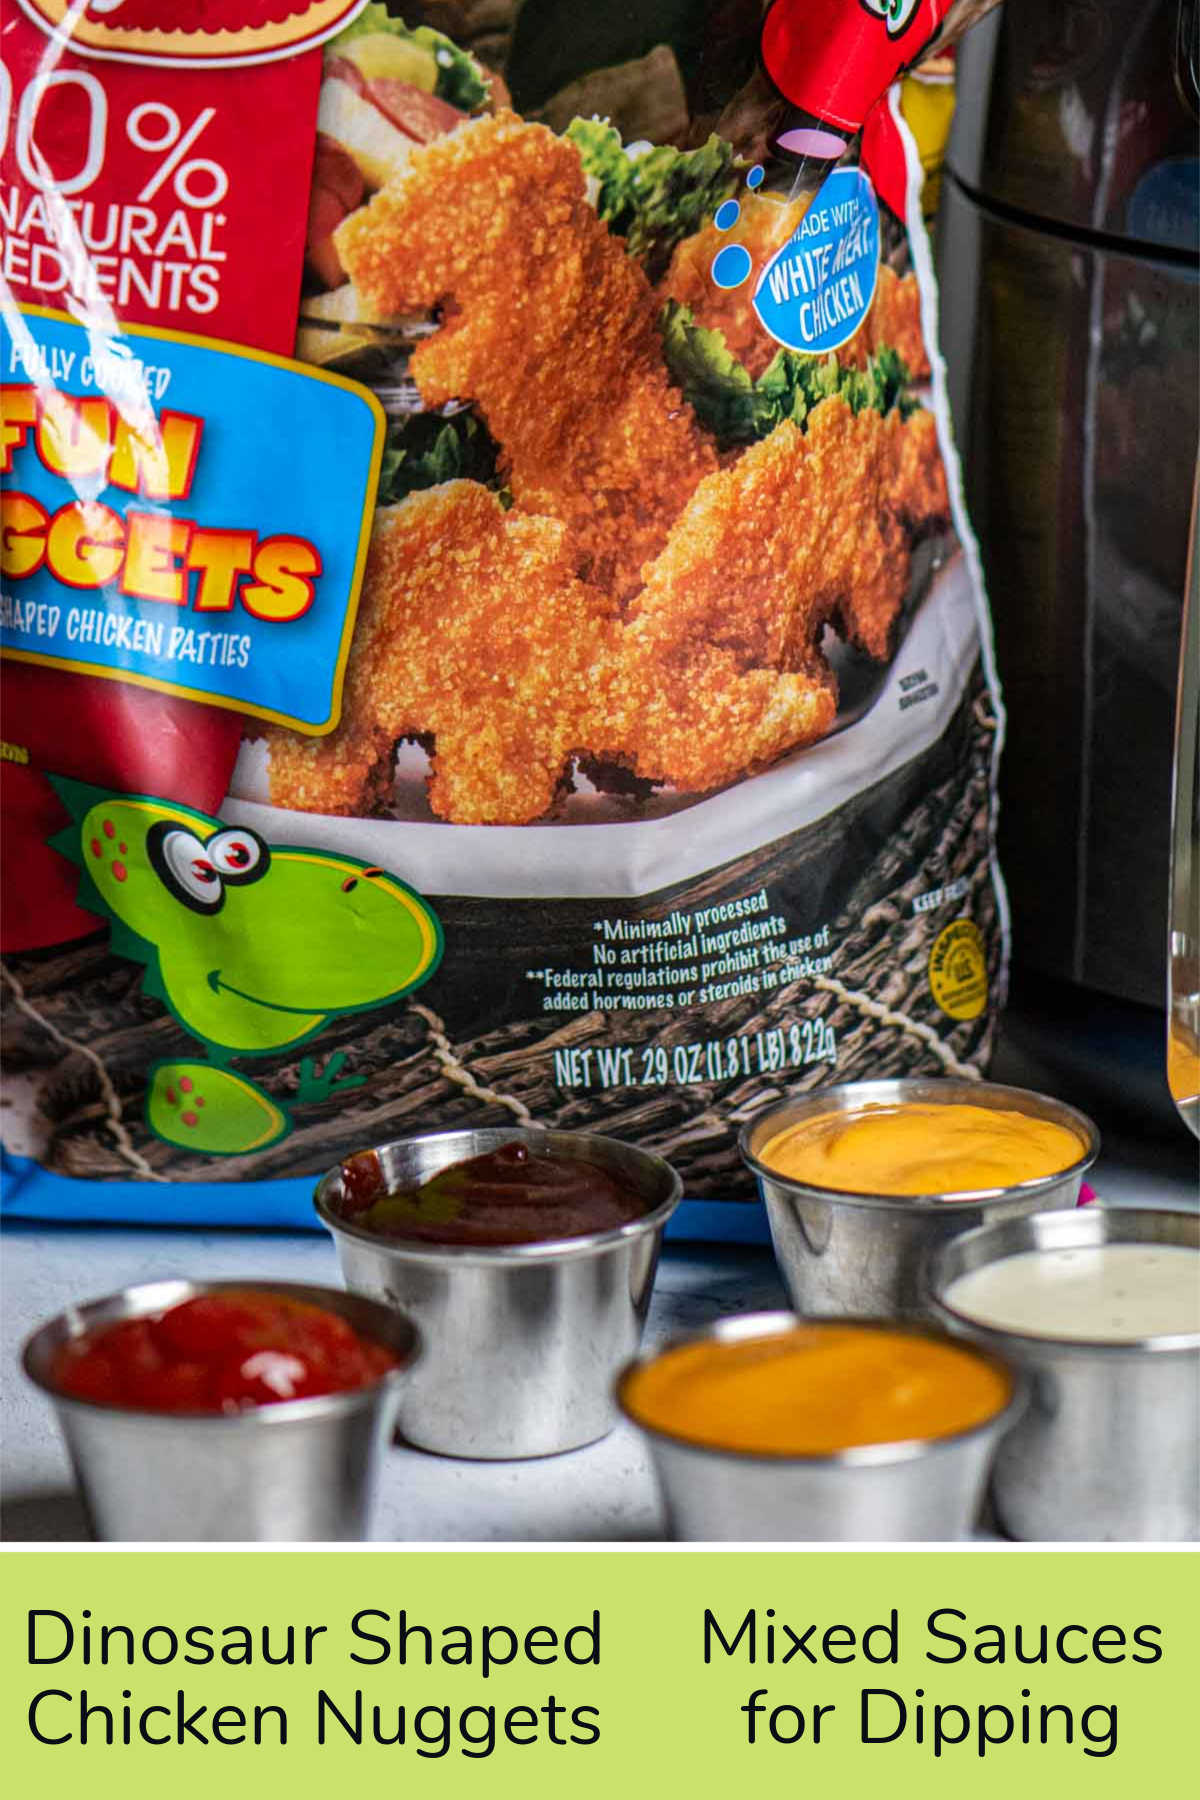 ingredient photo showing a bag of frozen dino nuggets and ramekins filled with dipping sauces in front of the air fryer.